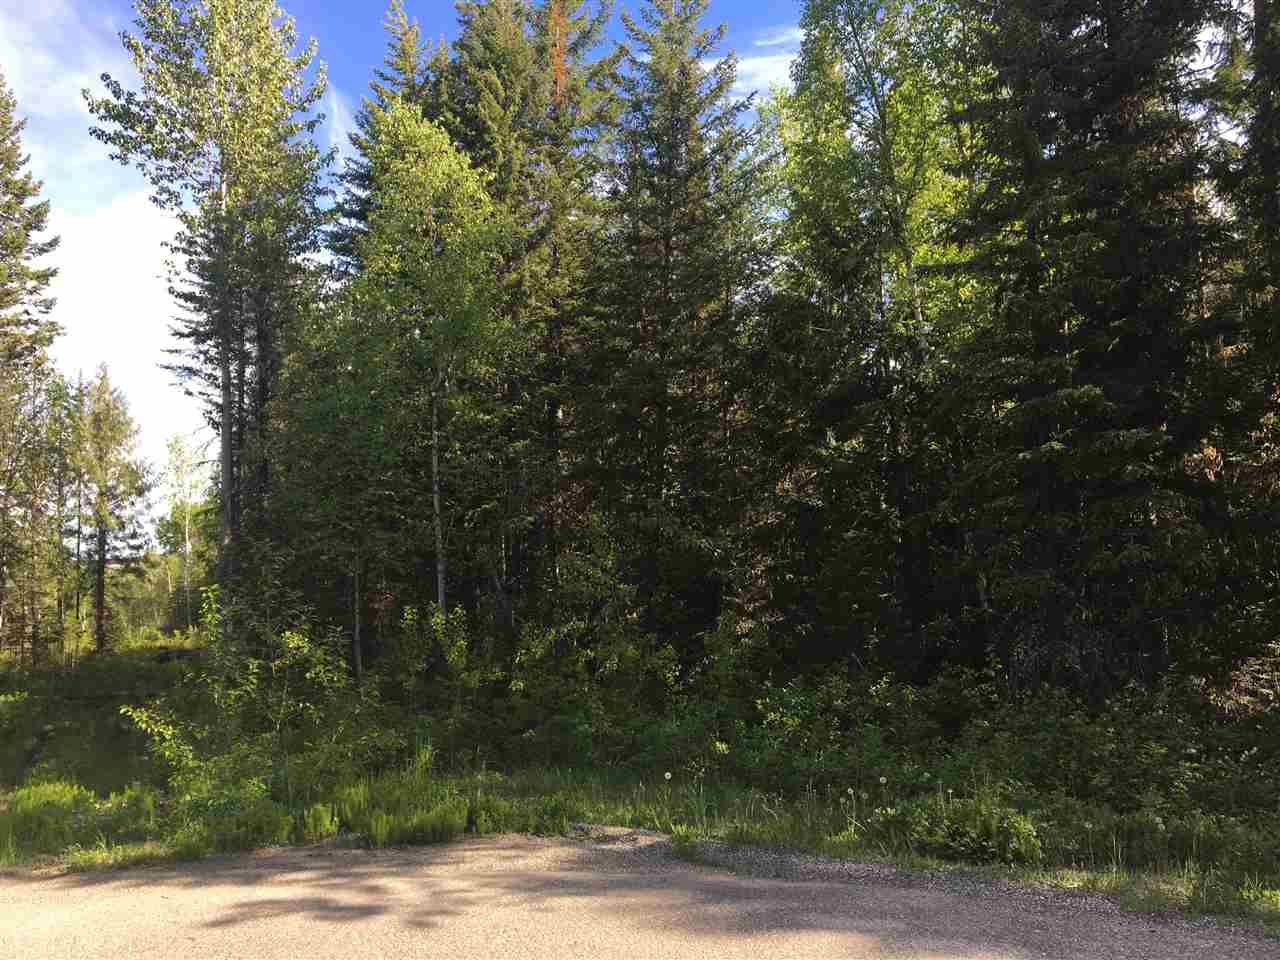 Photo 7: Photos: SHAVER ROAD in Quesnel: Quesnel - Rural North Land for sale (Quesnel (Zone 28))  : MLS®# R2461973